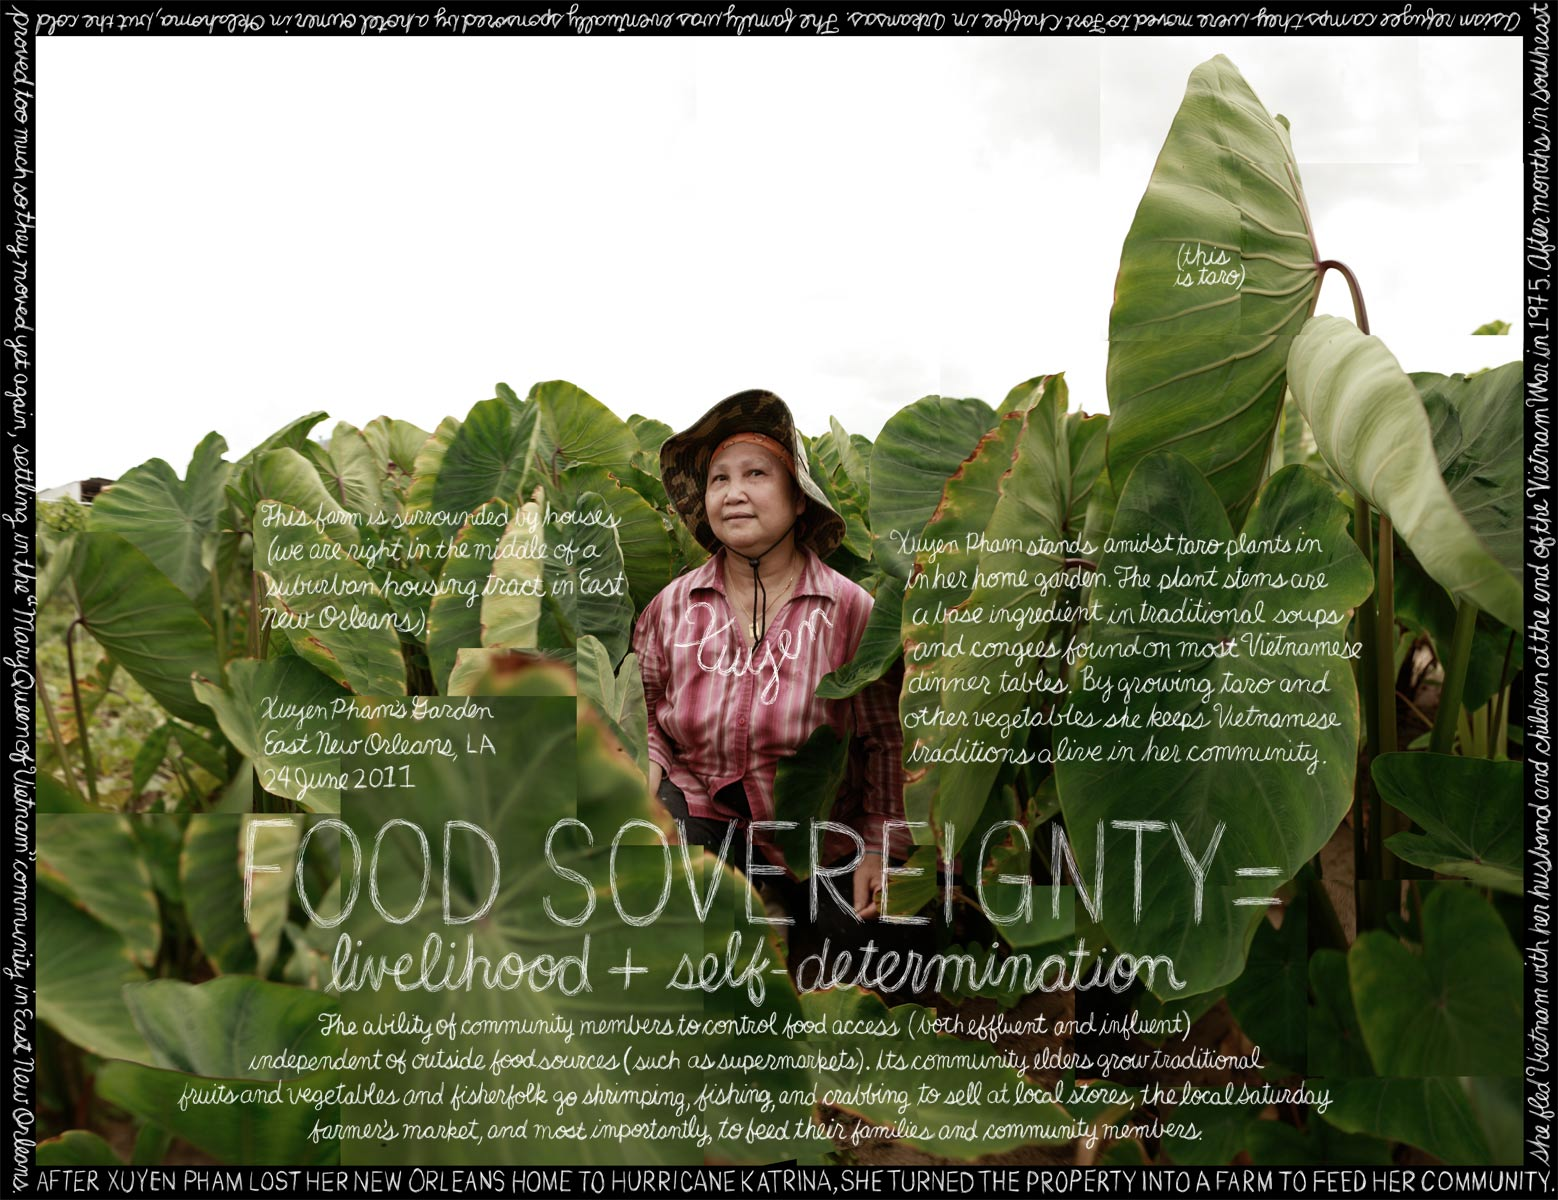 """""""Food Sovereignty"""" Xuyen Pham, MQVN CDC. New Orleans, LA. Credit: Information artwork by Douglas Gayeton. From the Lexicon of Sustainability project."""